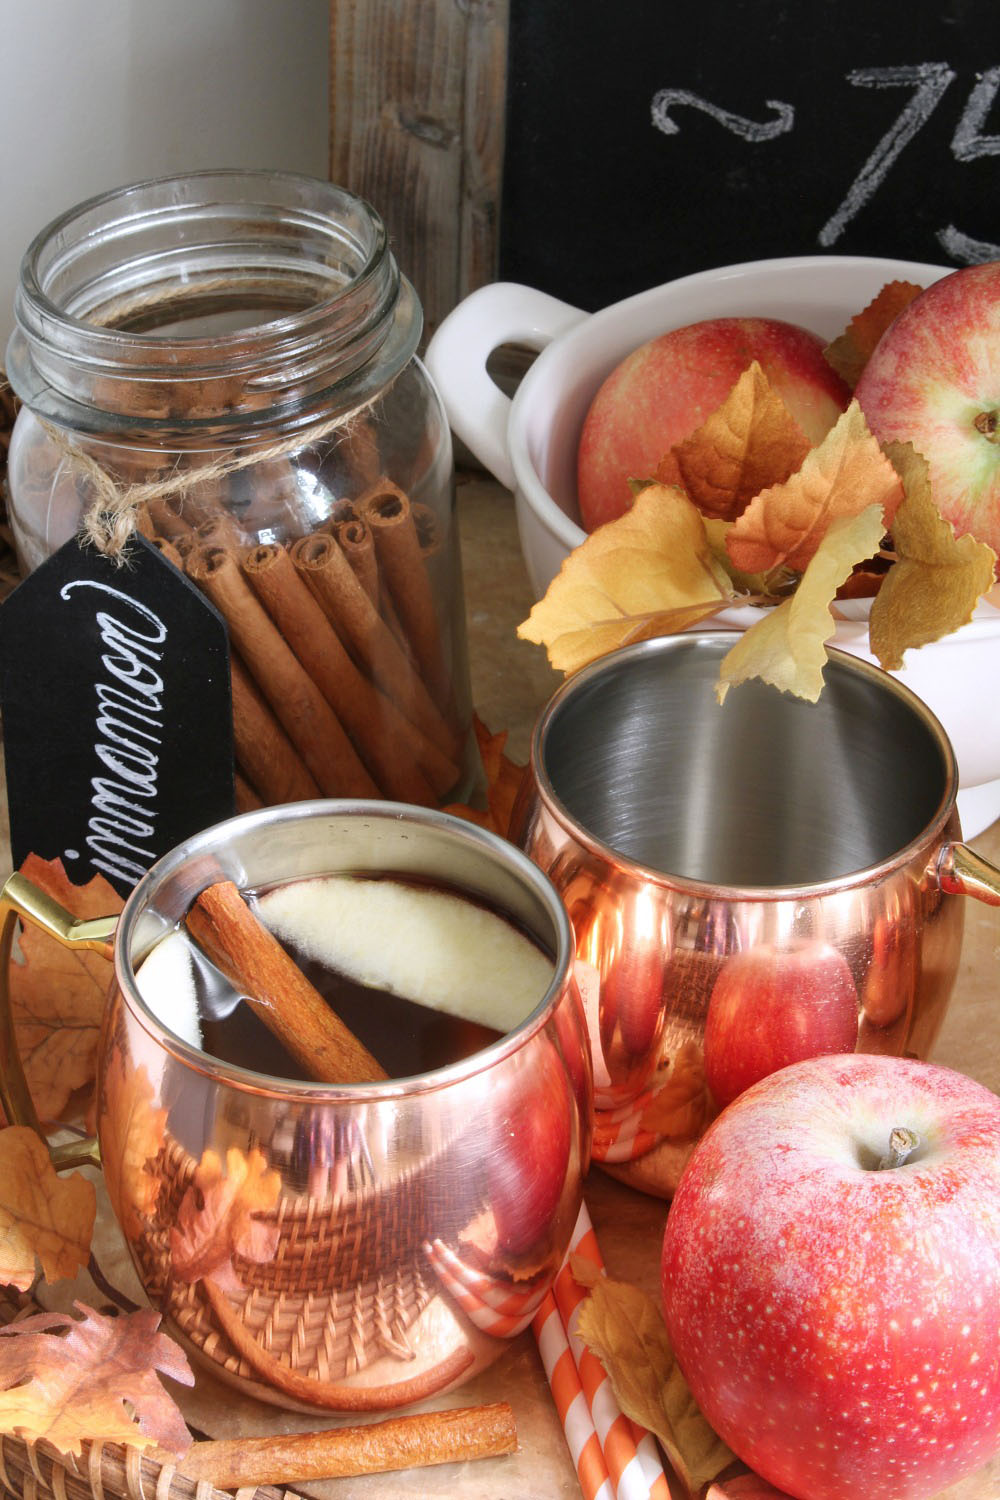 Spiced apple cider recipe with slices of fresh apple and cinnamon sticks in copper mugs.